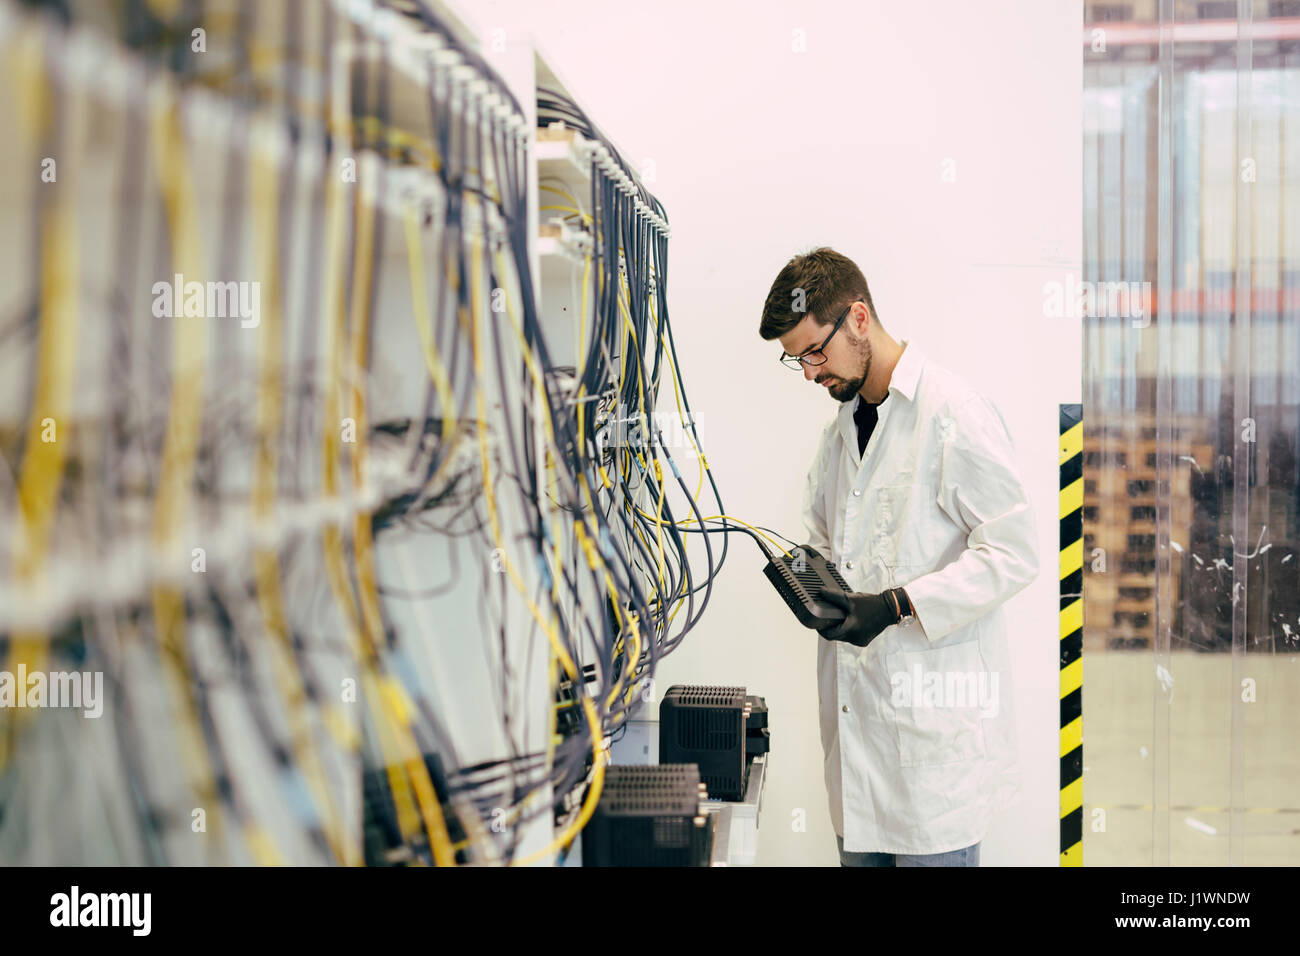 Professional network hardware inspection - Stock Image